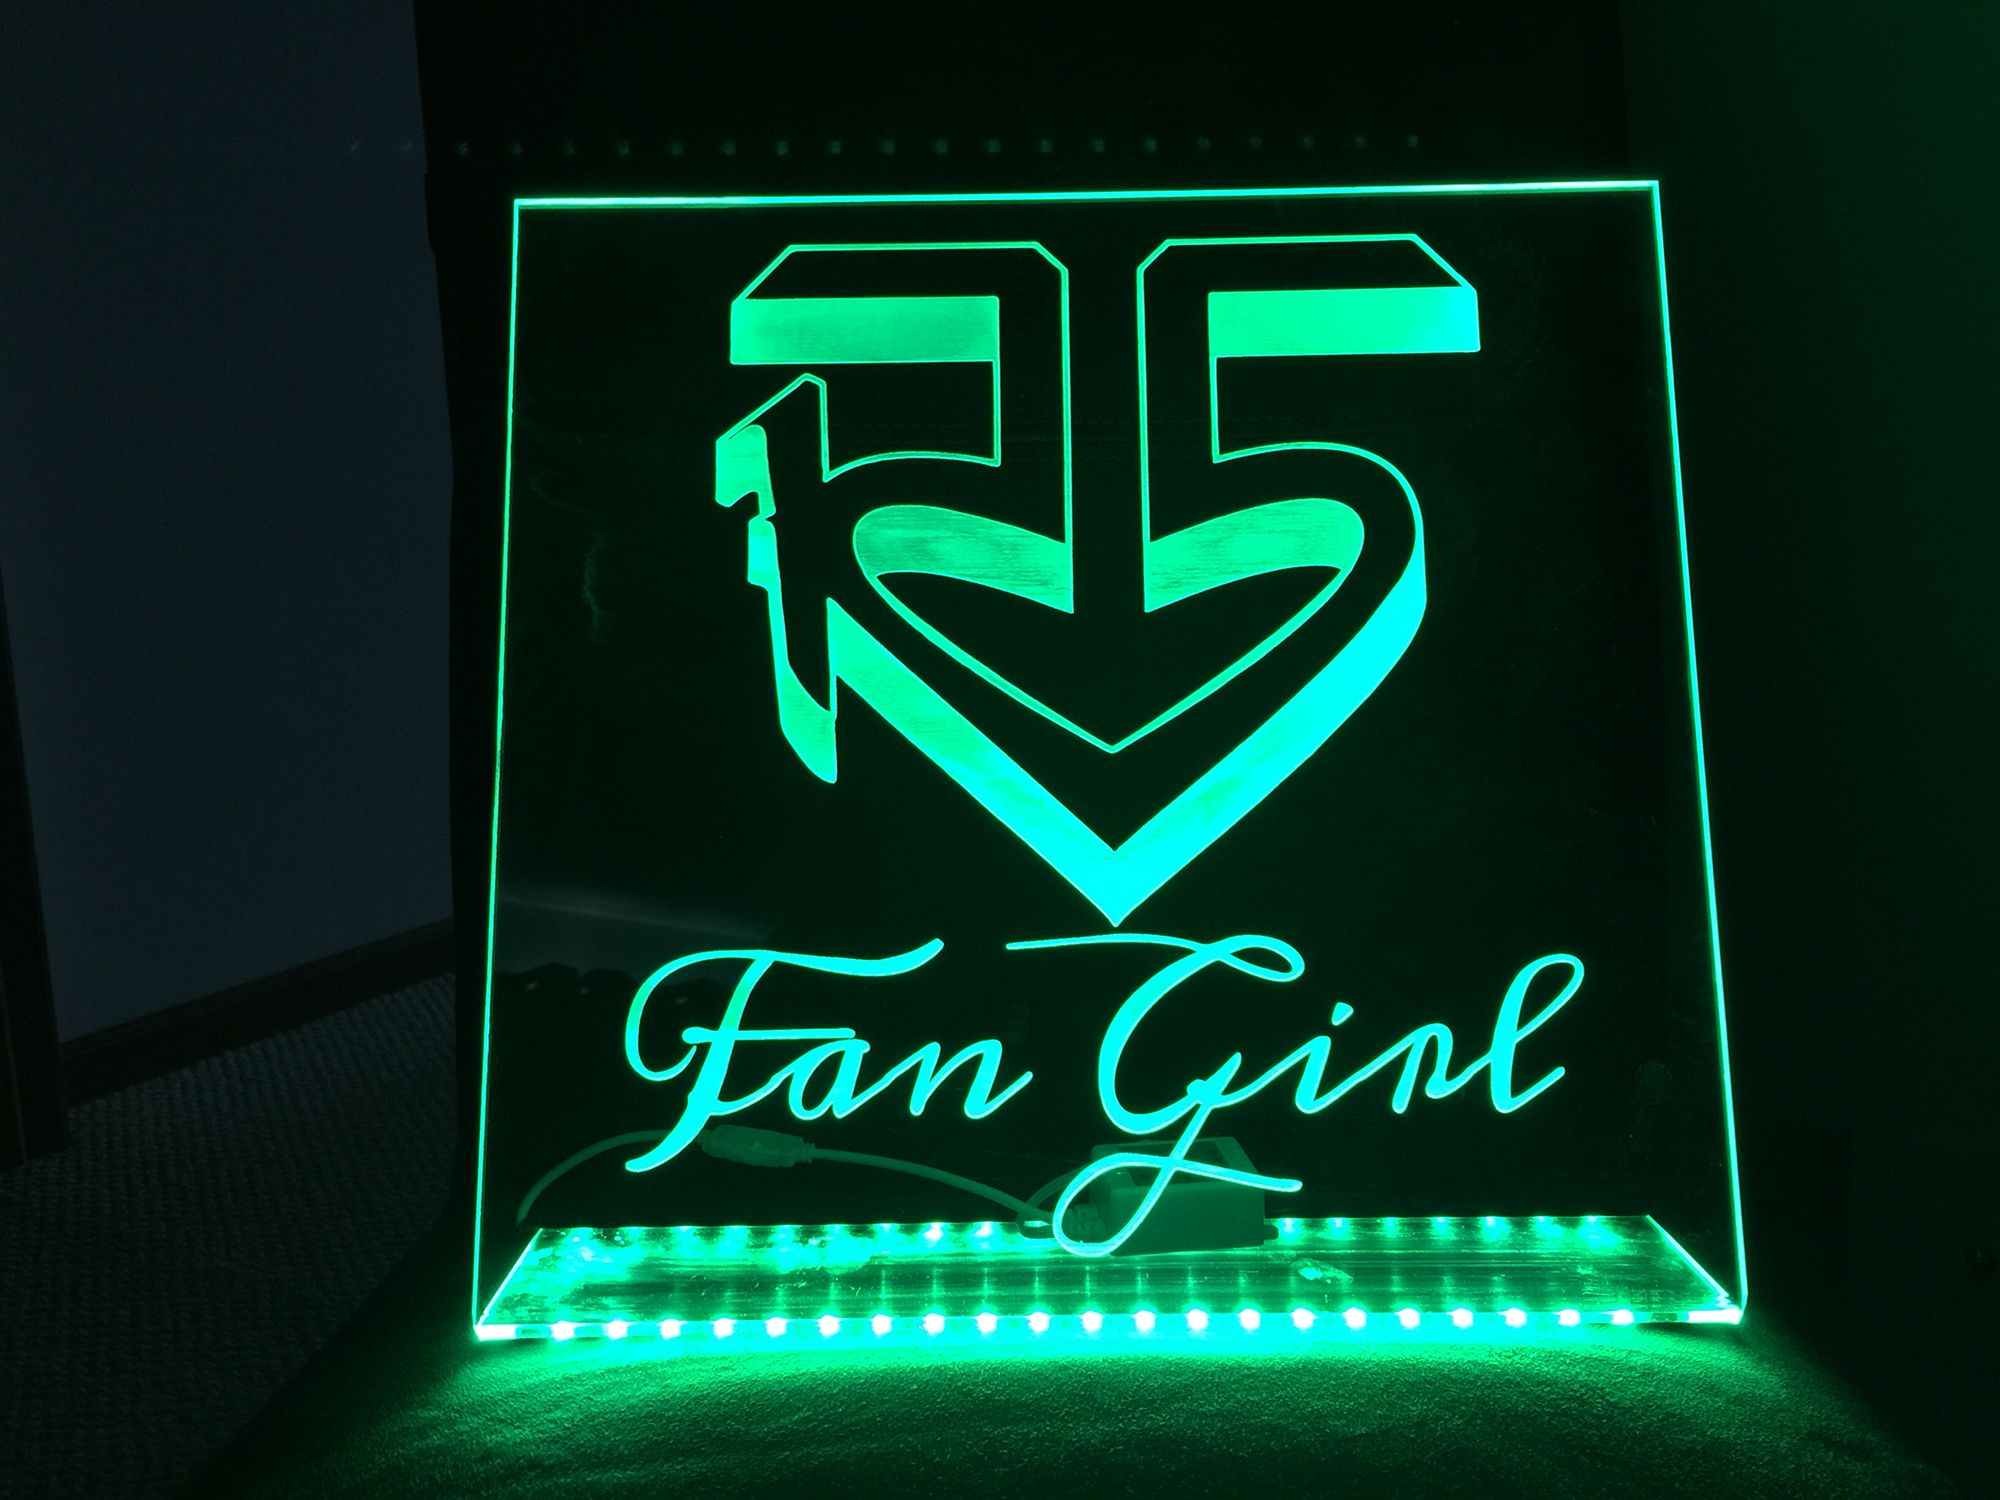 Laser Engraved Acrylic Edge Lit Led Sign Cook S Creative